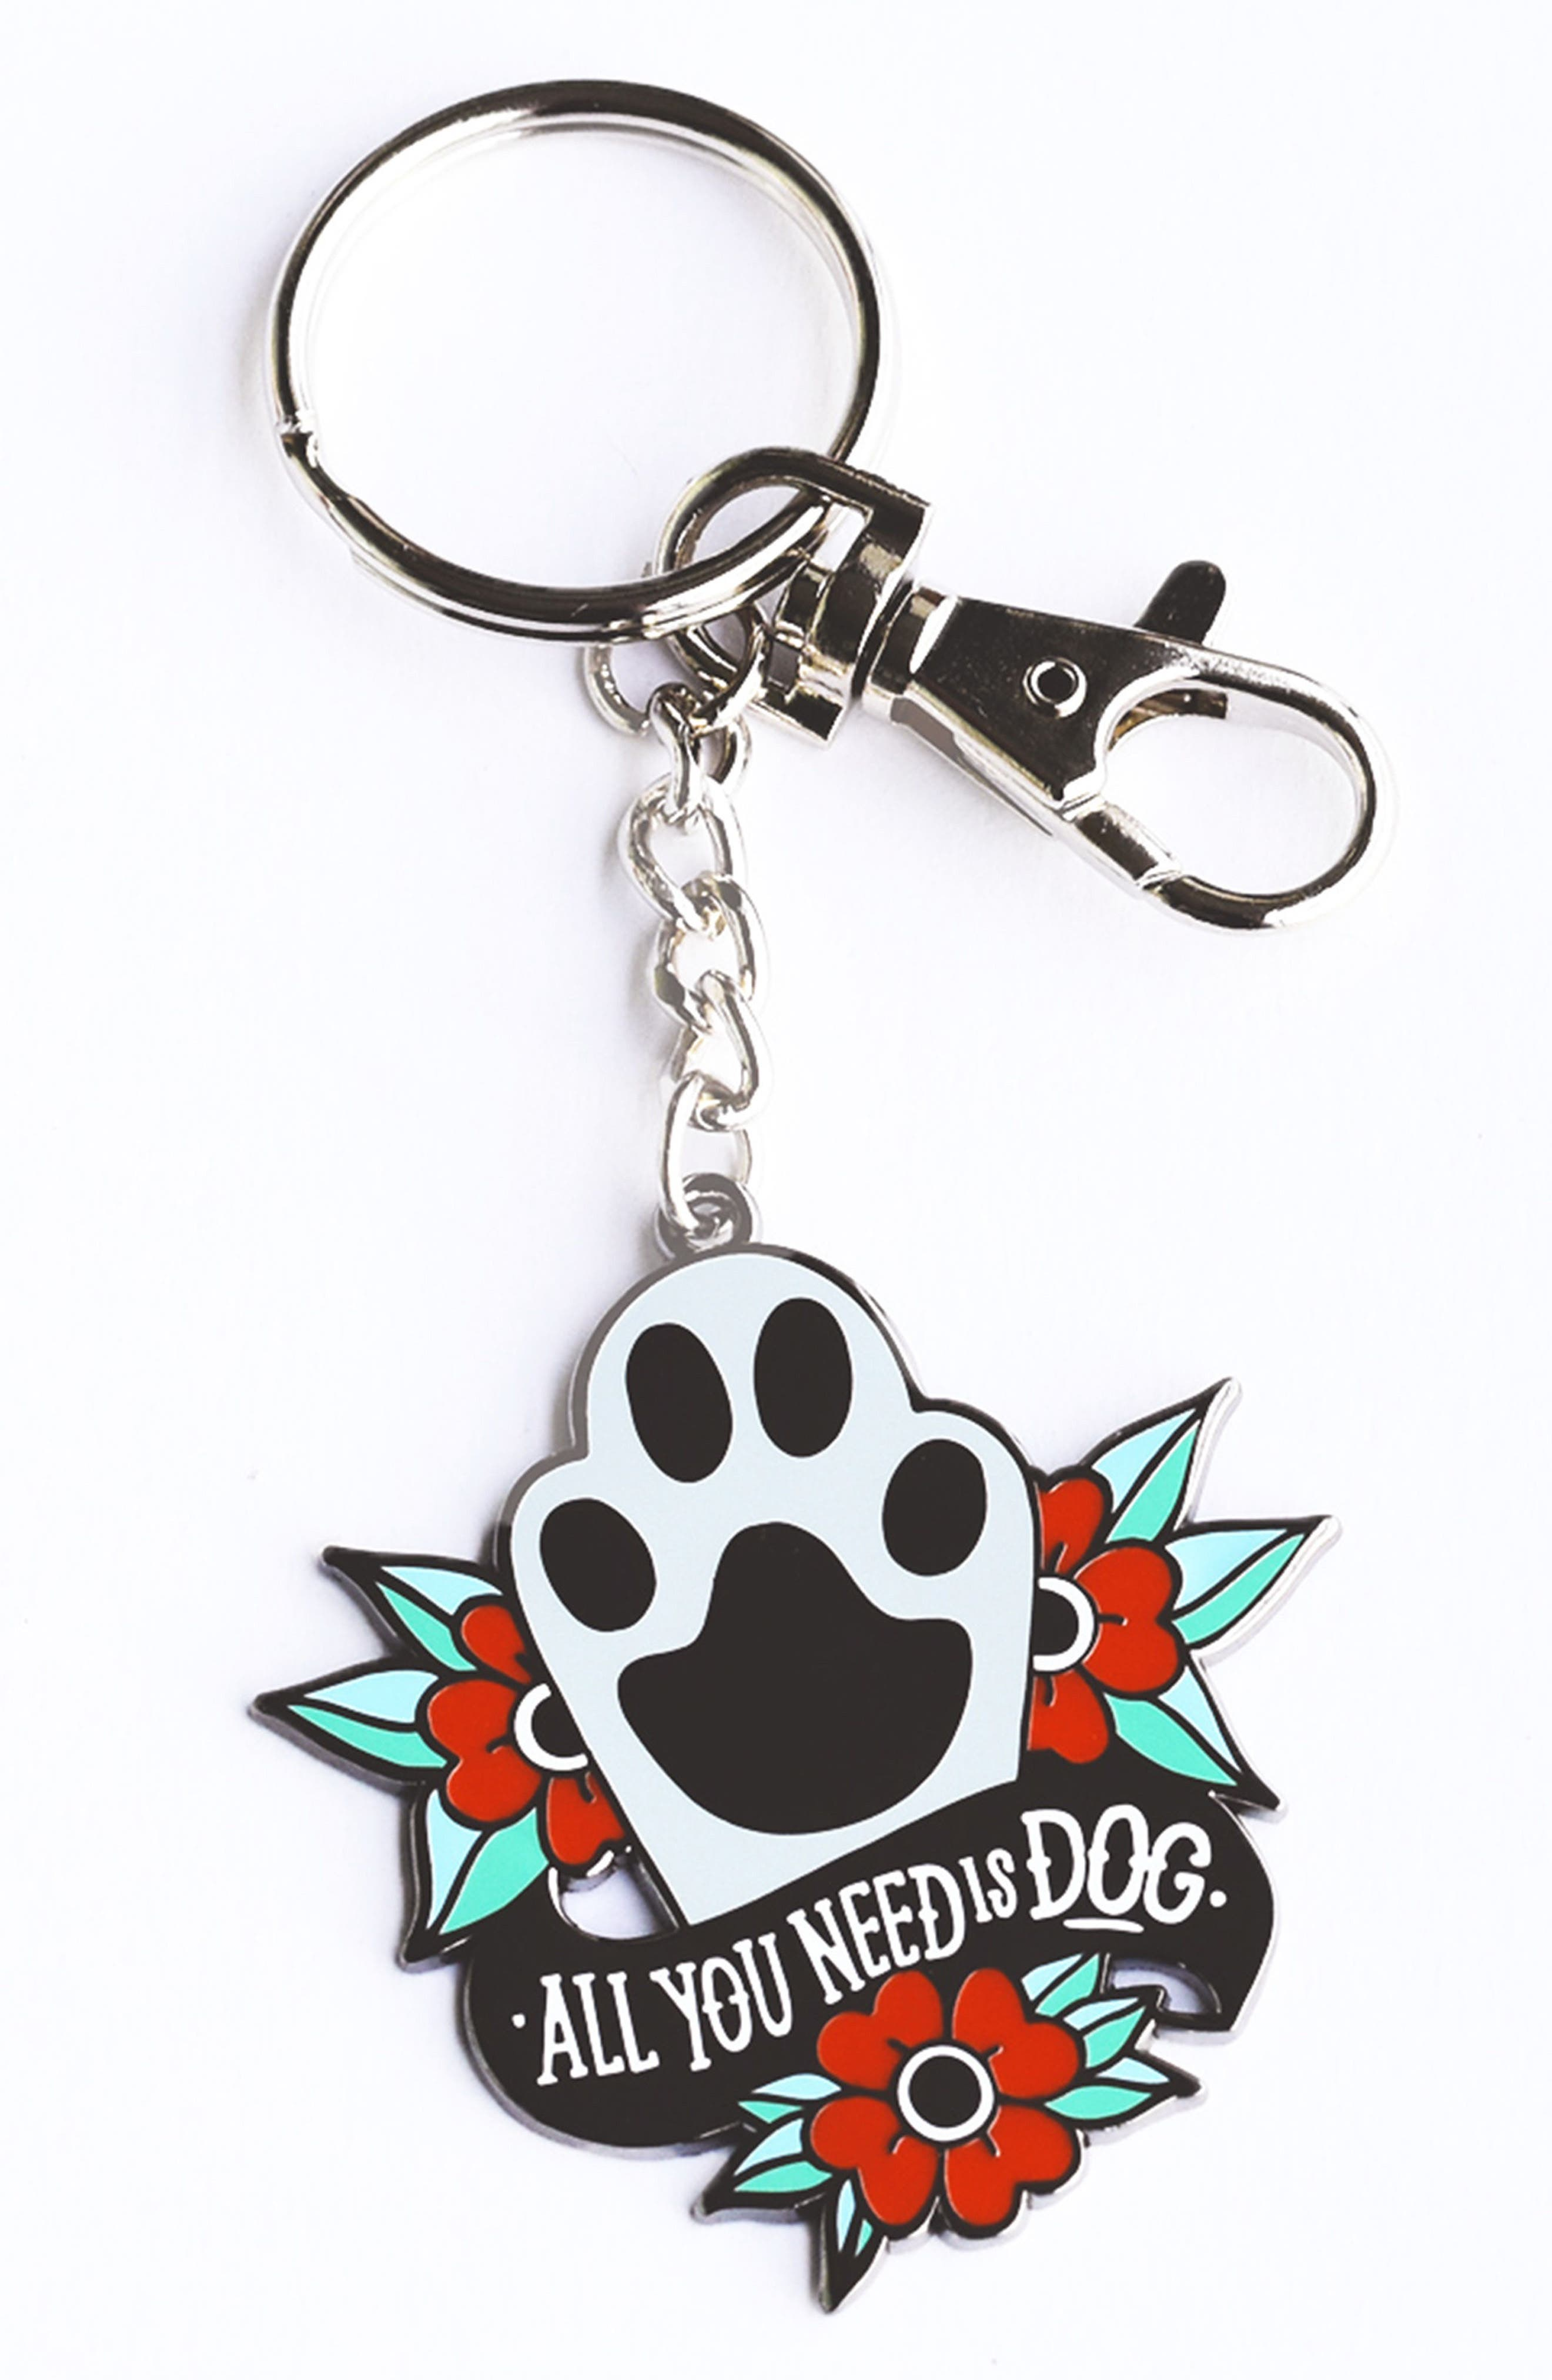 FIVE15 All You Need Is Dog Key Chain